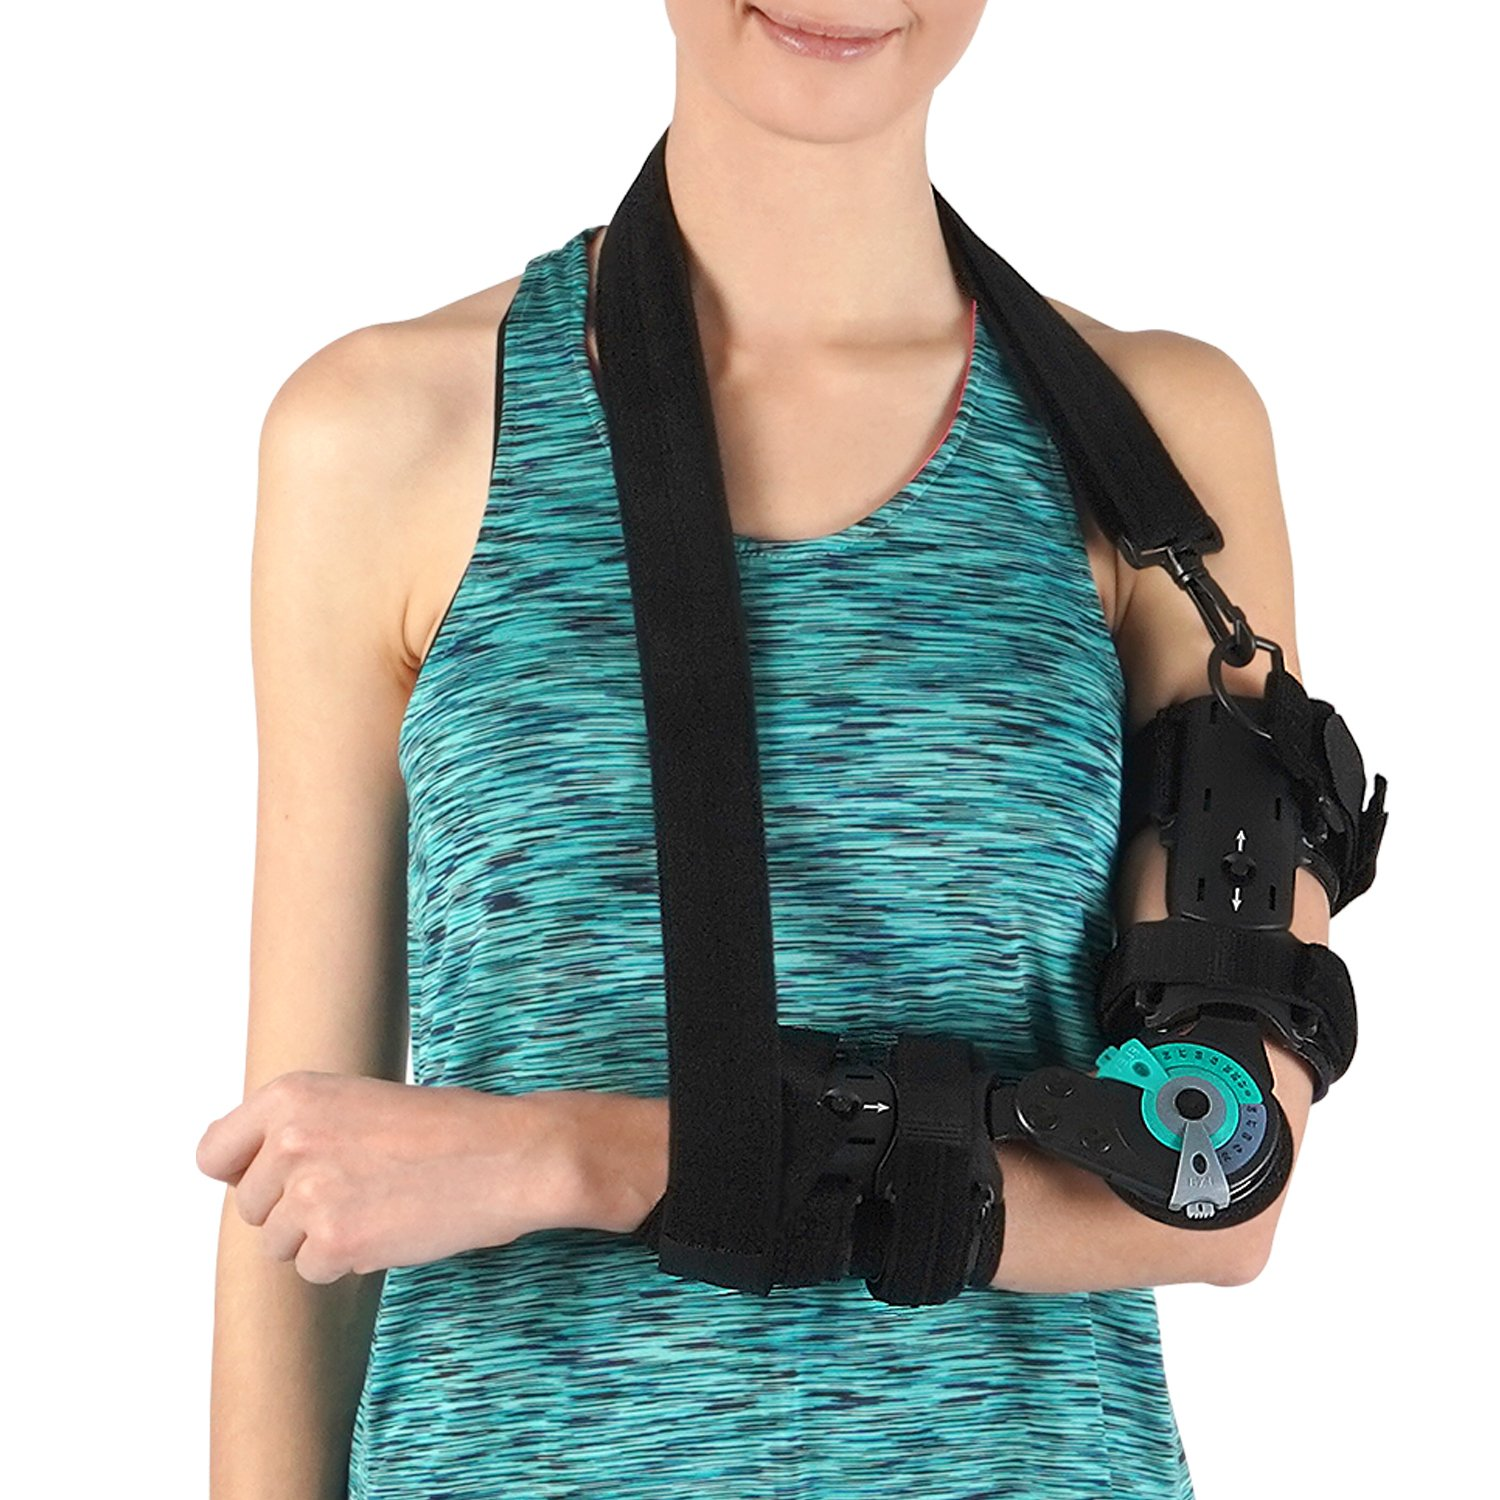 Soles Hinged Elbow Brace (Left Arm) | Support Post Op Injury Recovery, ROM Orthosis | Adjustable Range of Motion | One Size Fits All | Unisex